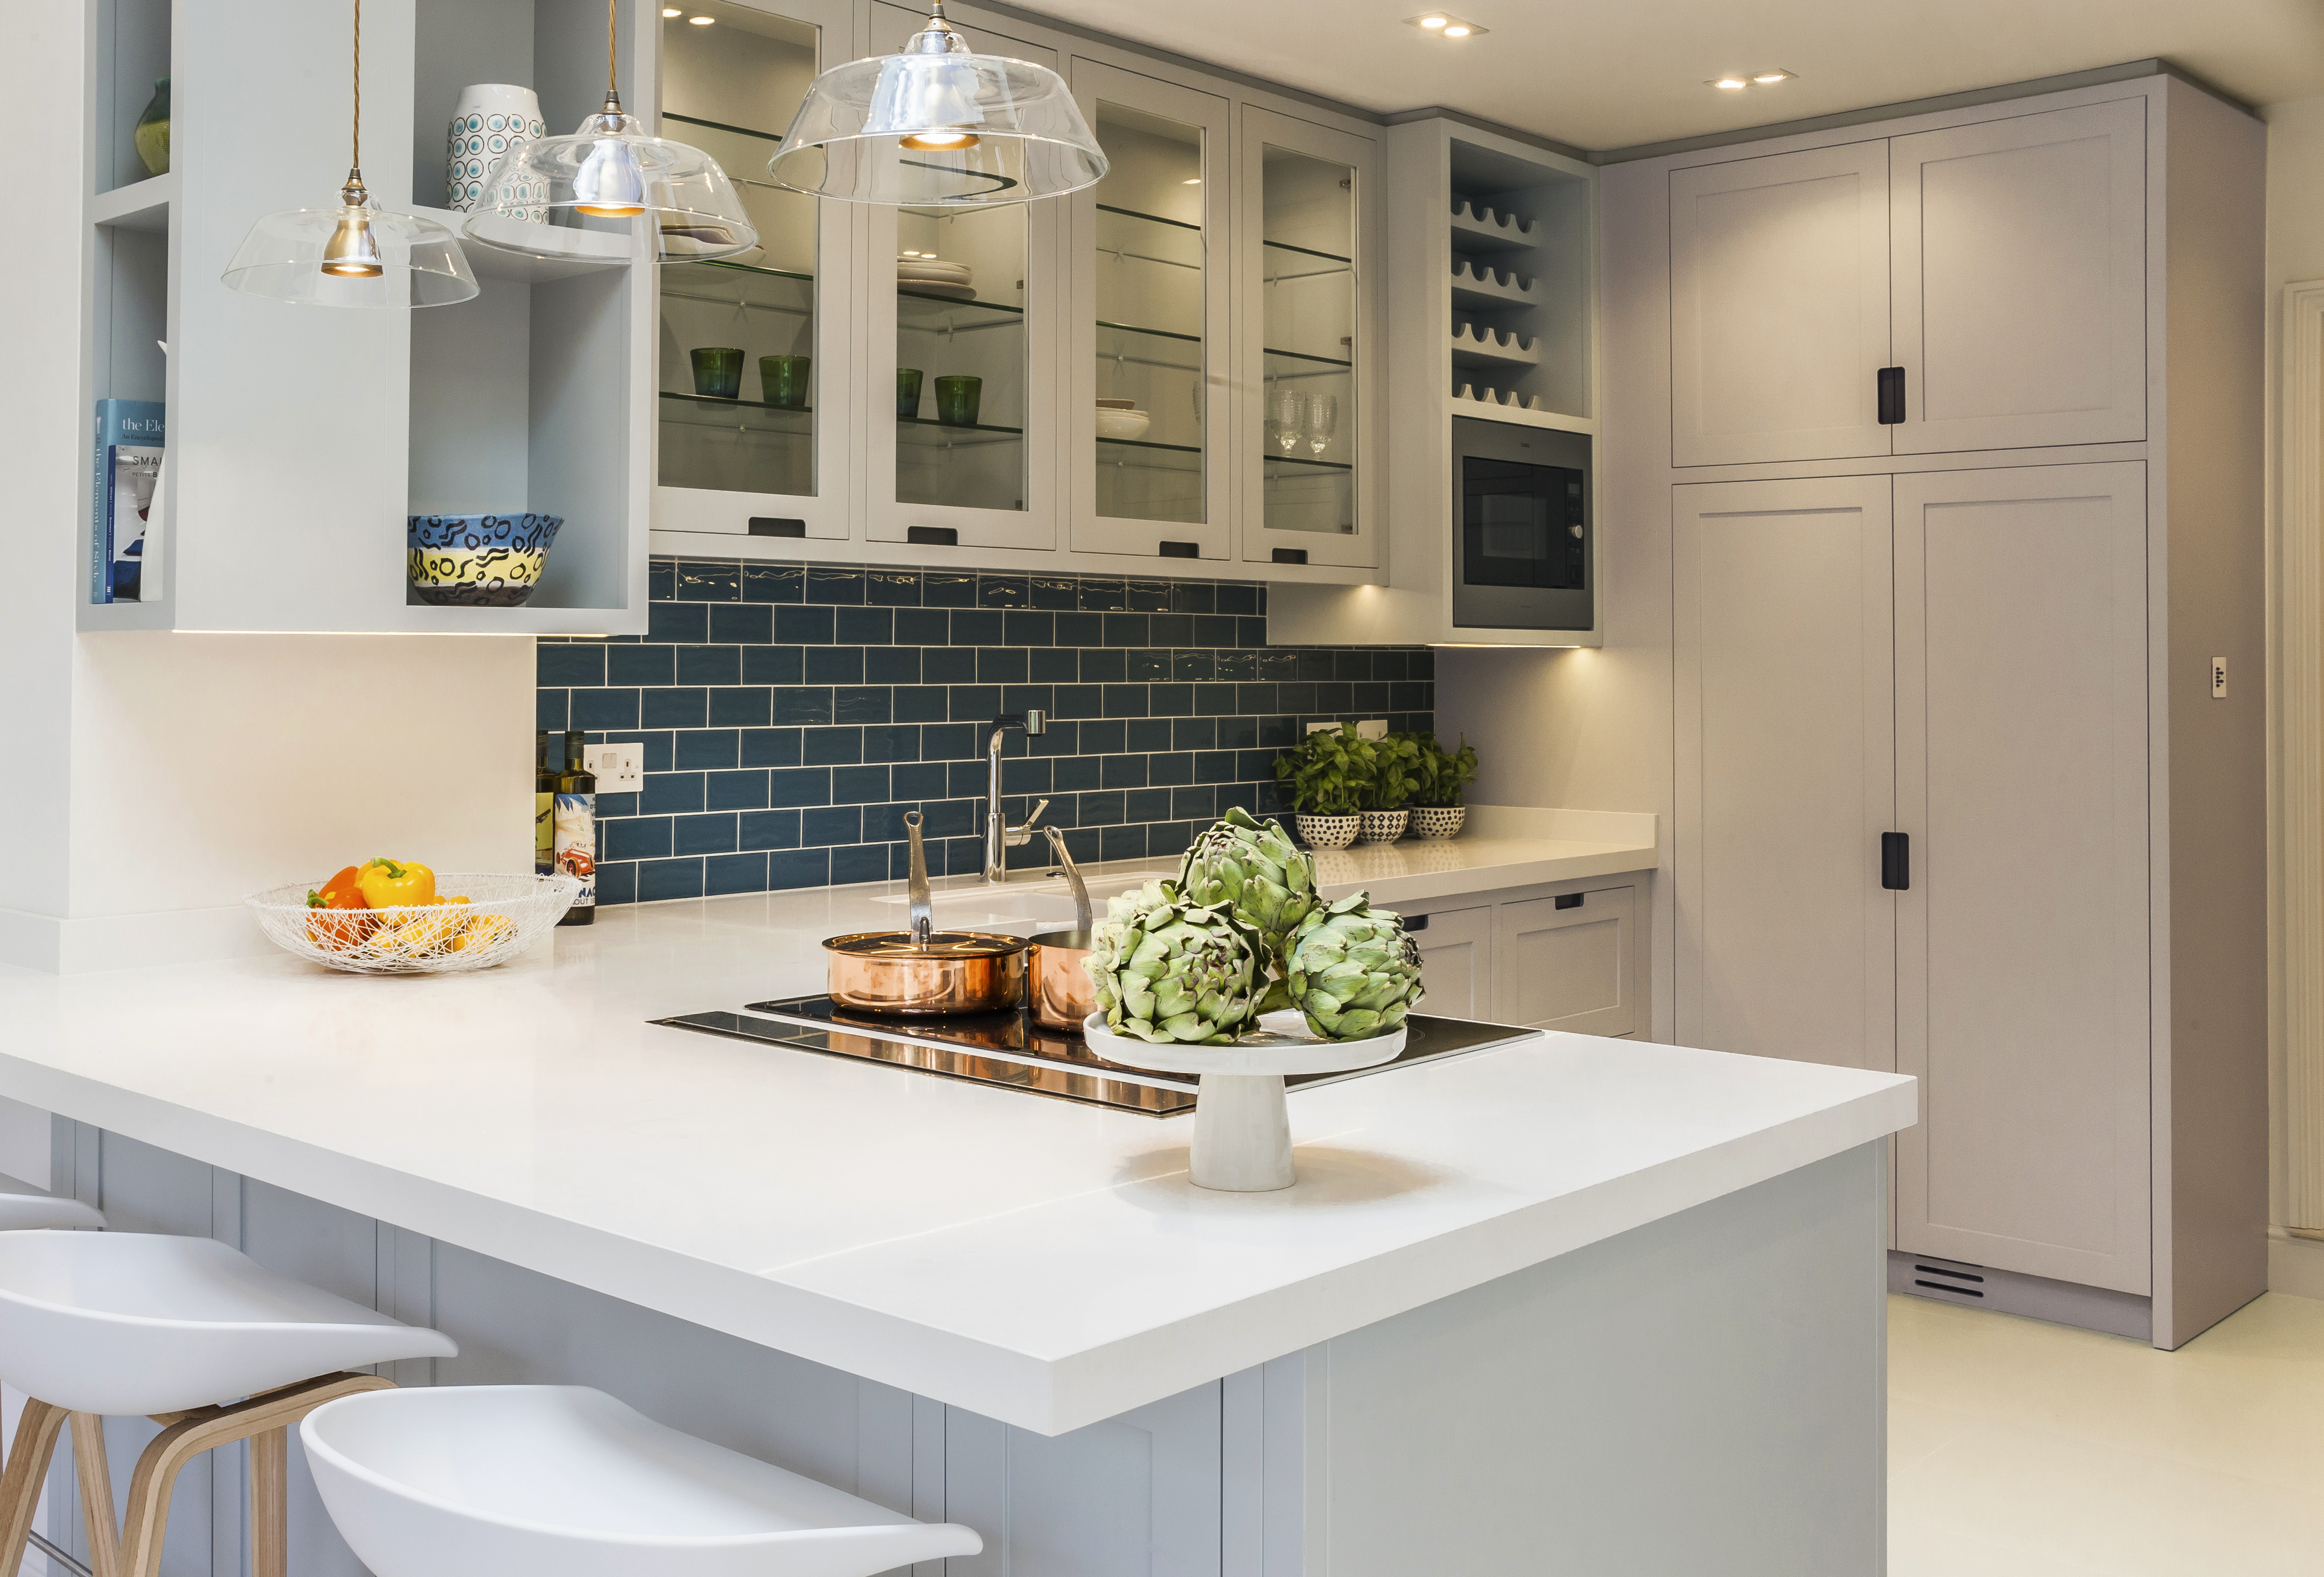 after-lli-design-victorian-townhouse-highgate-kitchen-overview-1_cropped.jpg